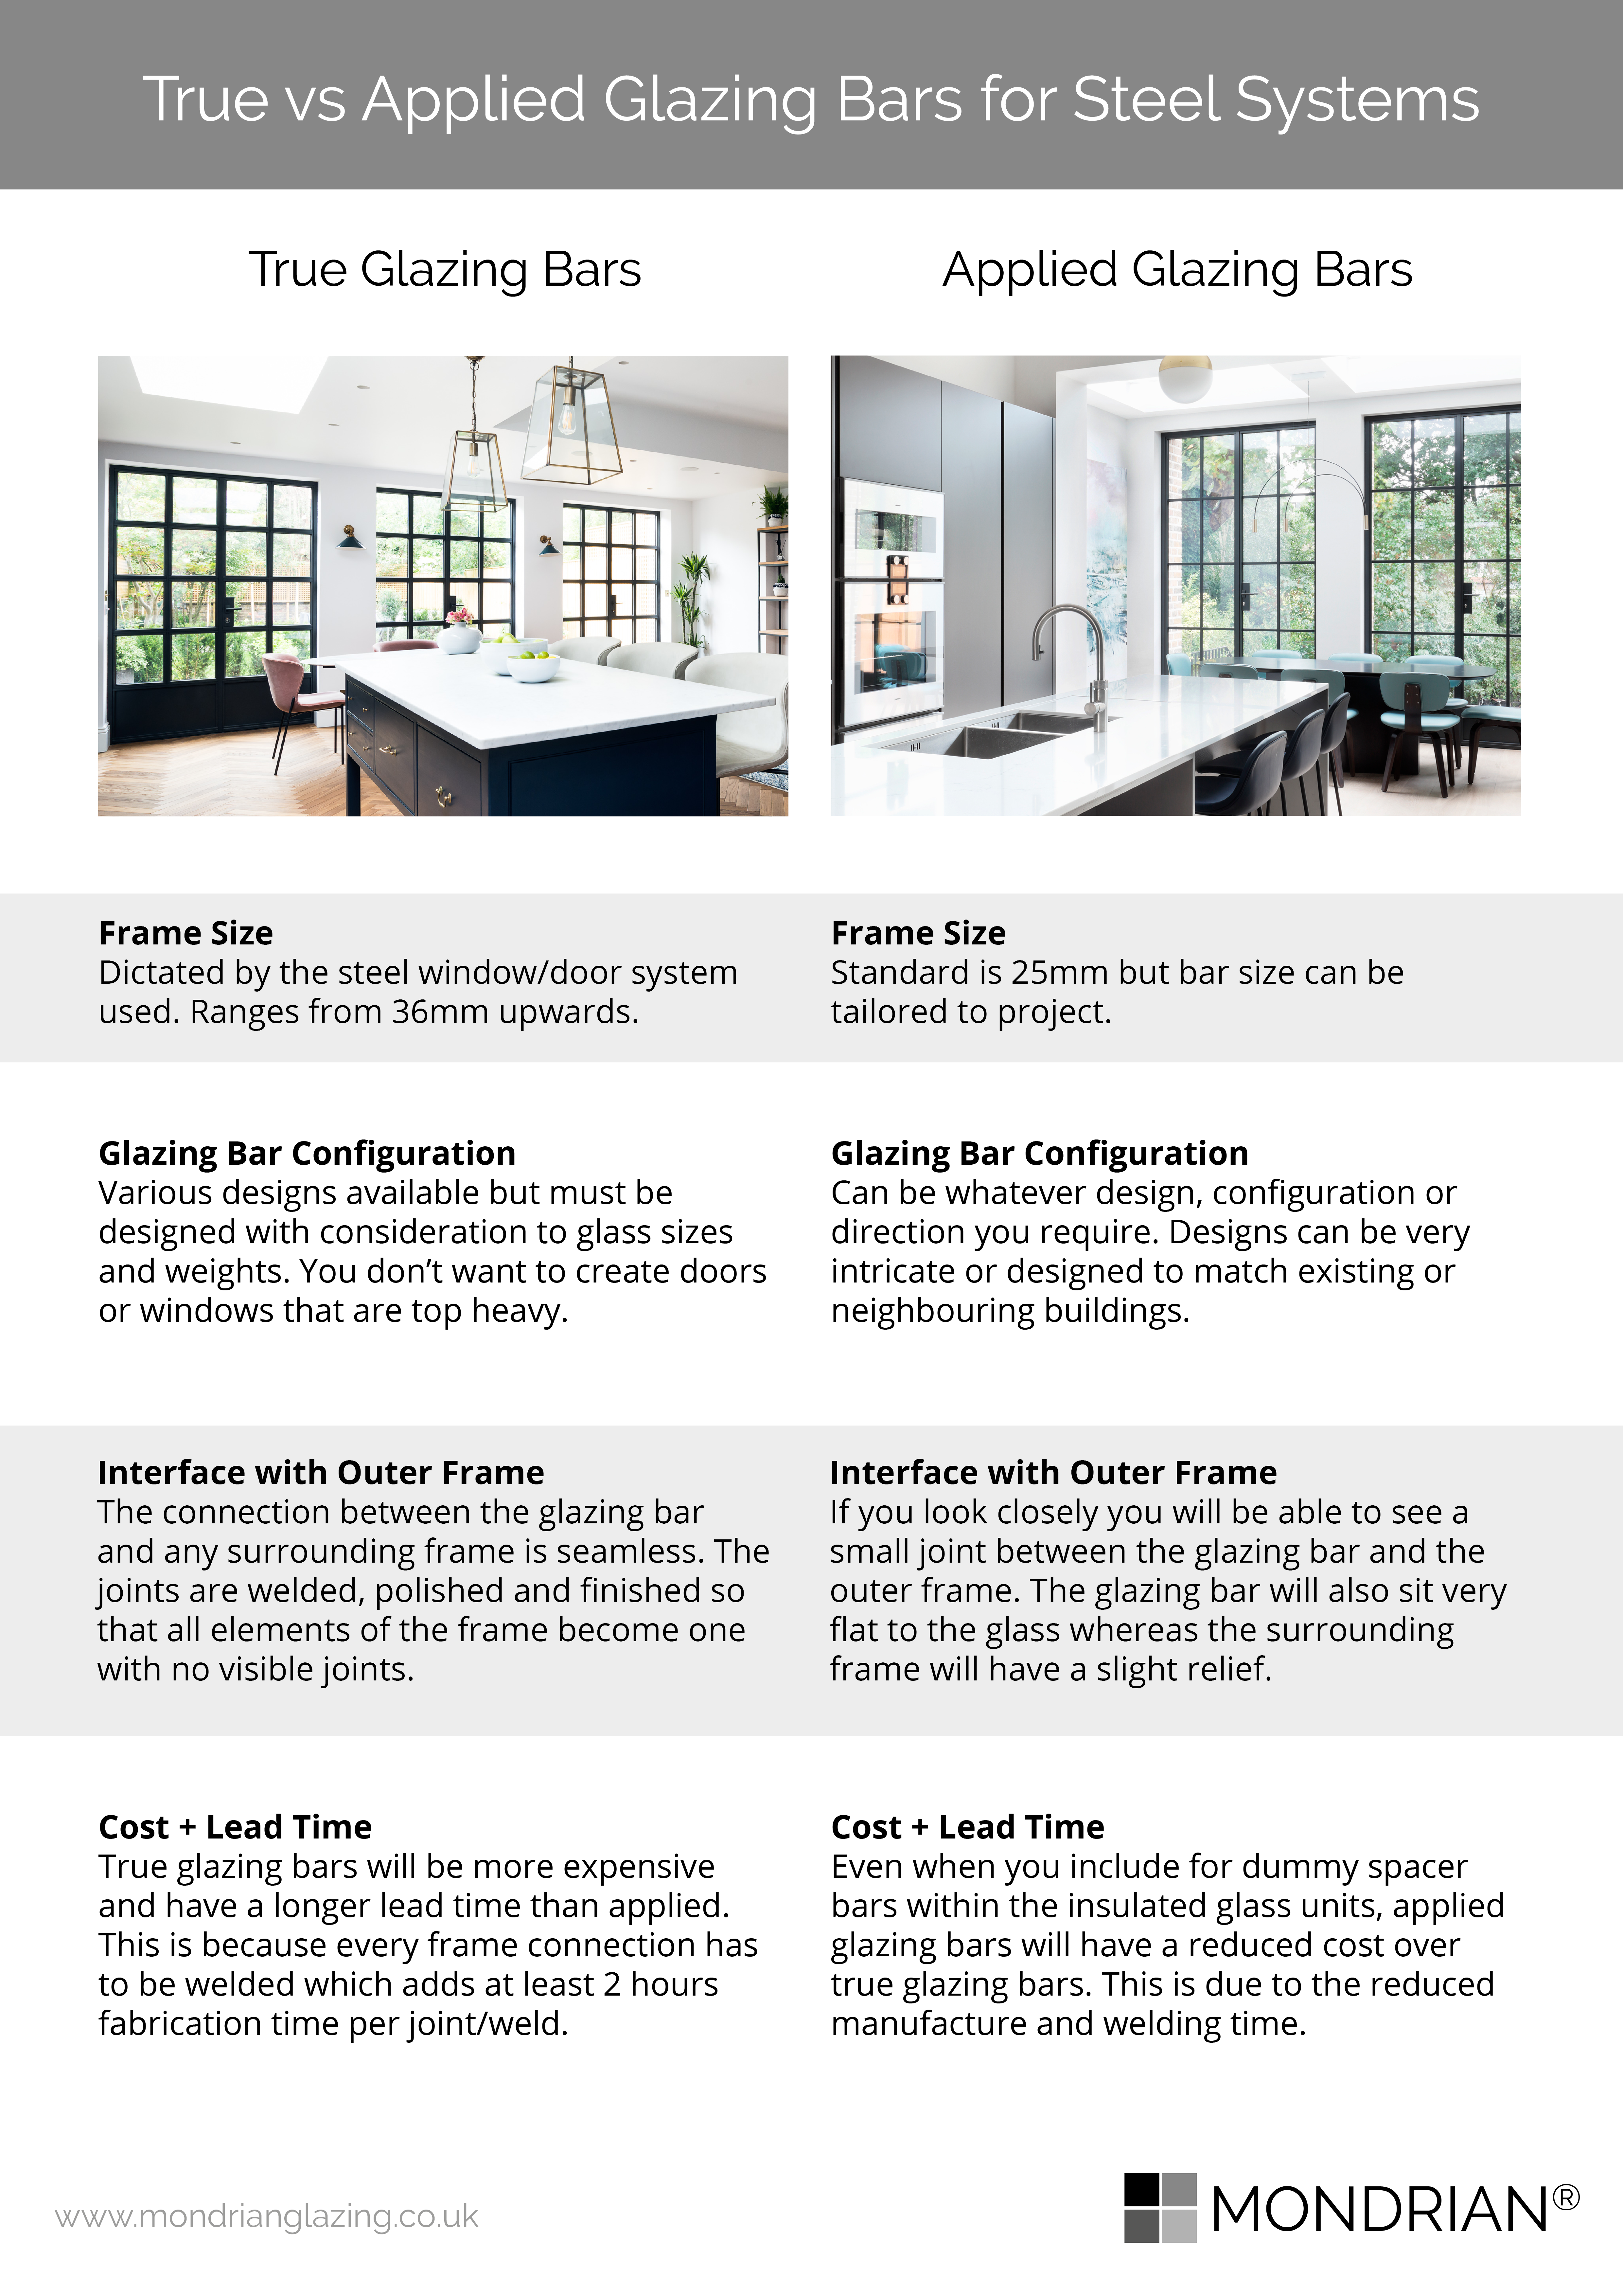 true vs applied glazing bars infographic